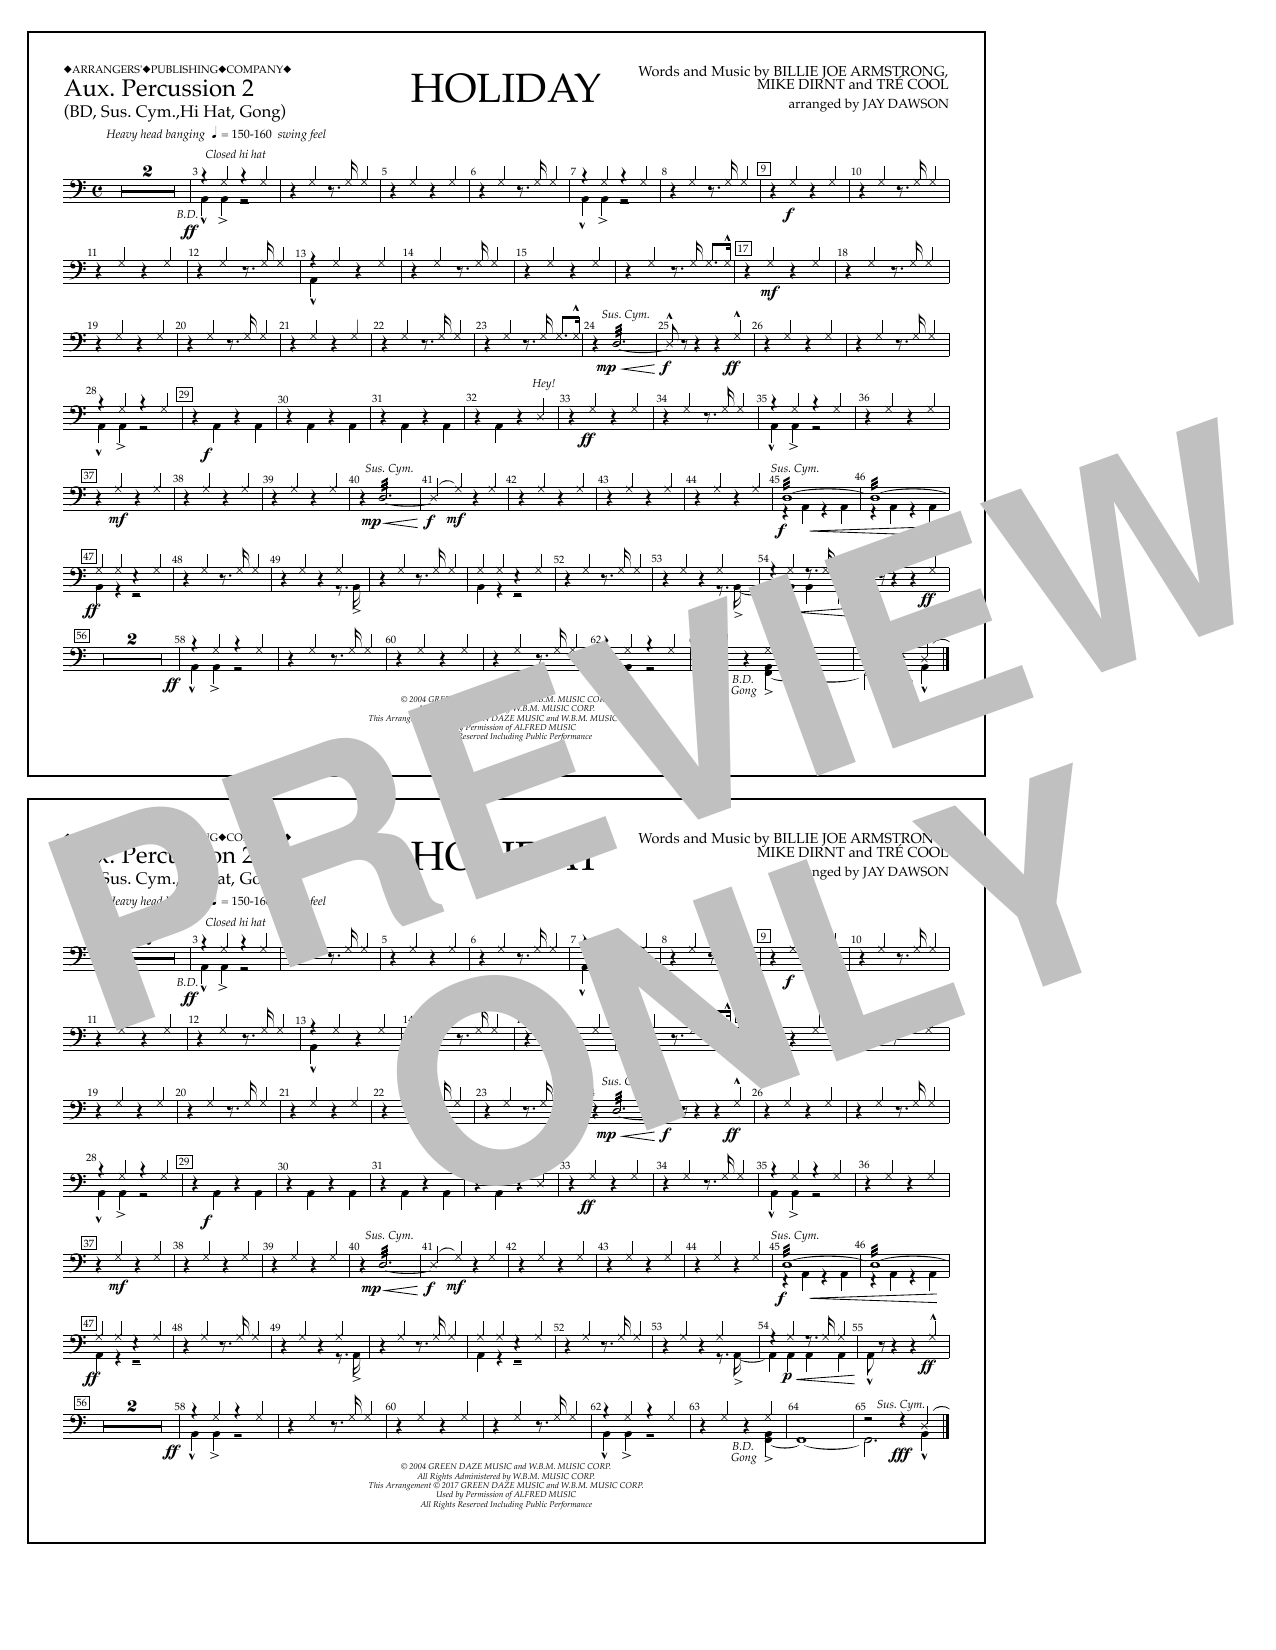 Holiday - Aux. Percussion 2 Sheet Music